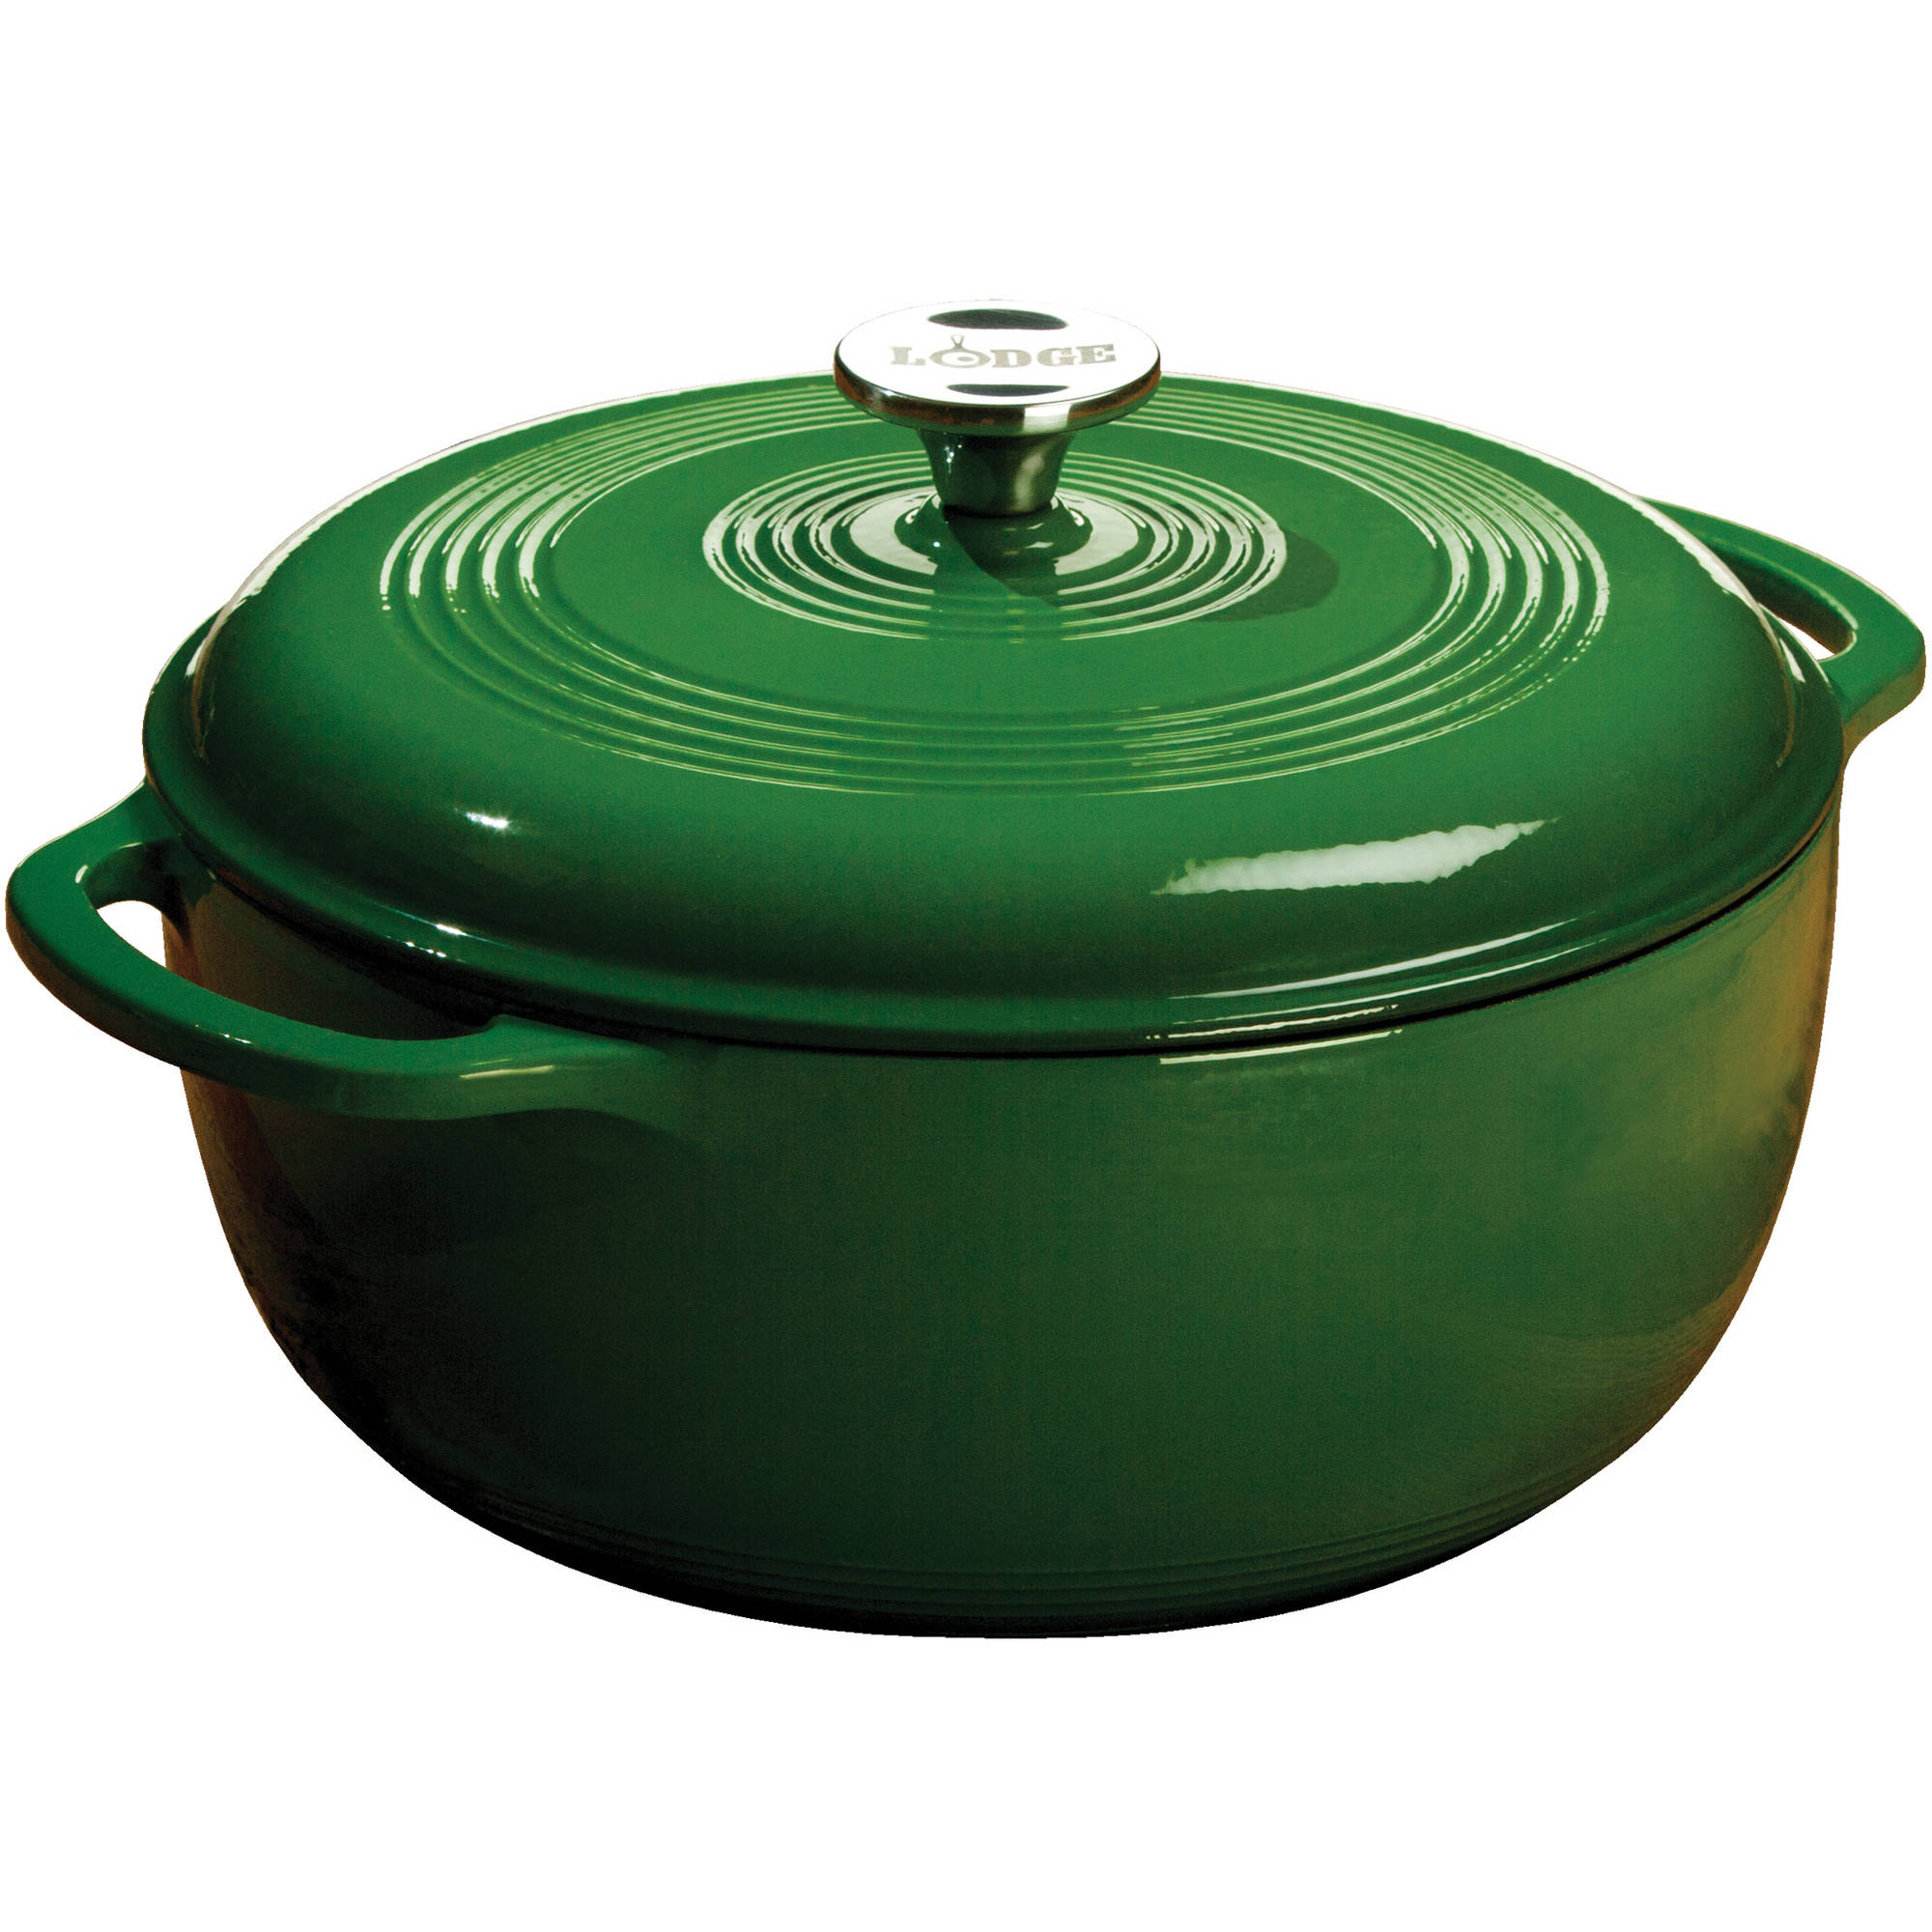 Lodge Enameled Cast Iron 6 Quart Dutch Oven Green Ec6d53